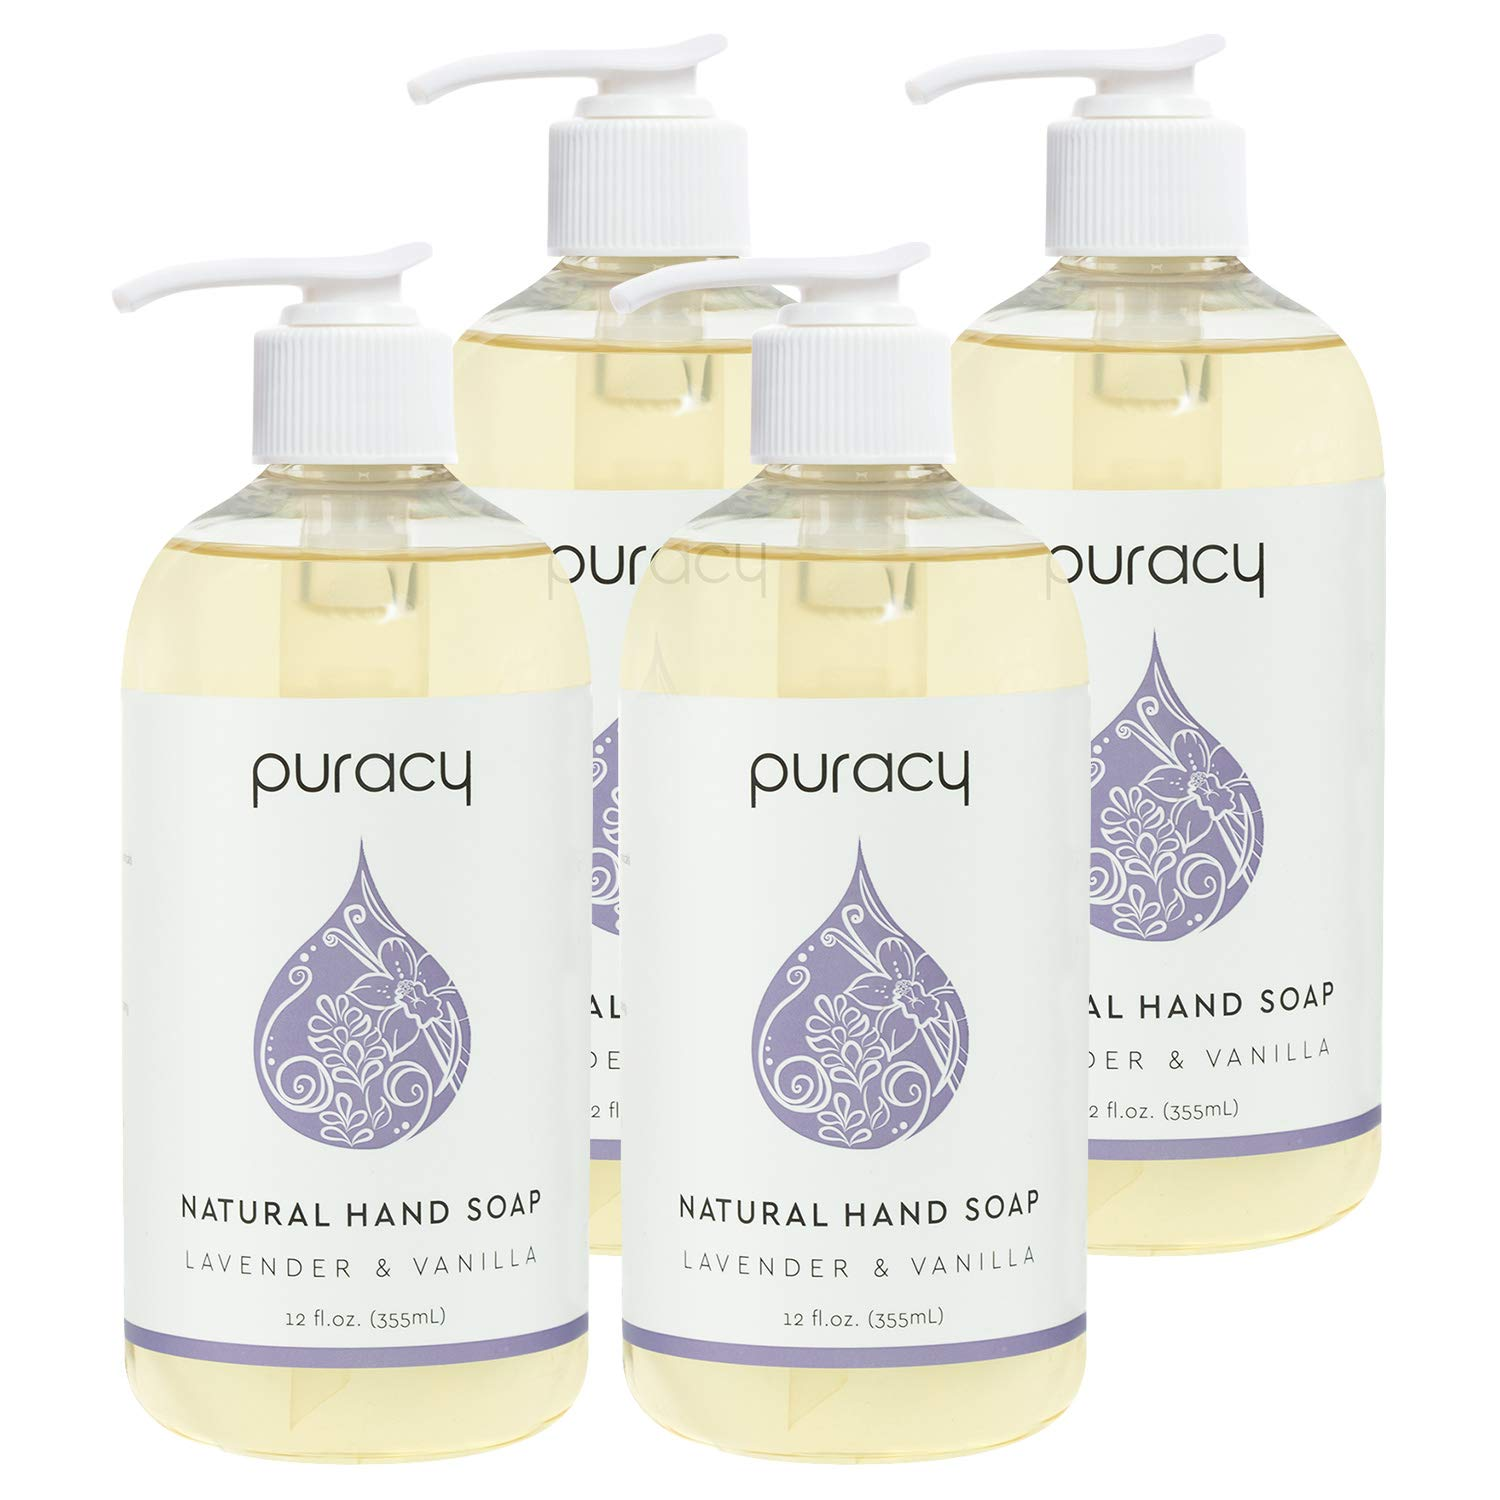 Puracy Nature Liquid Hand Soap